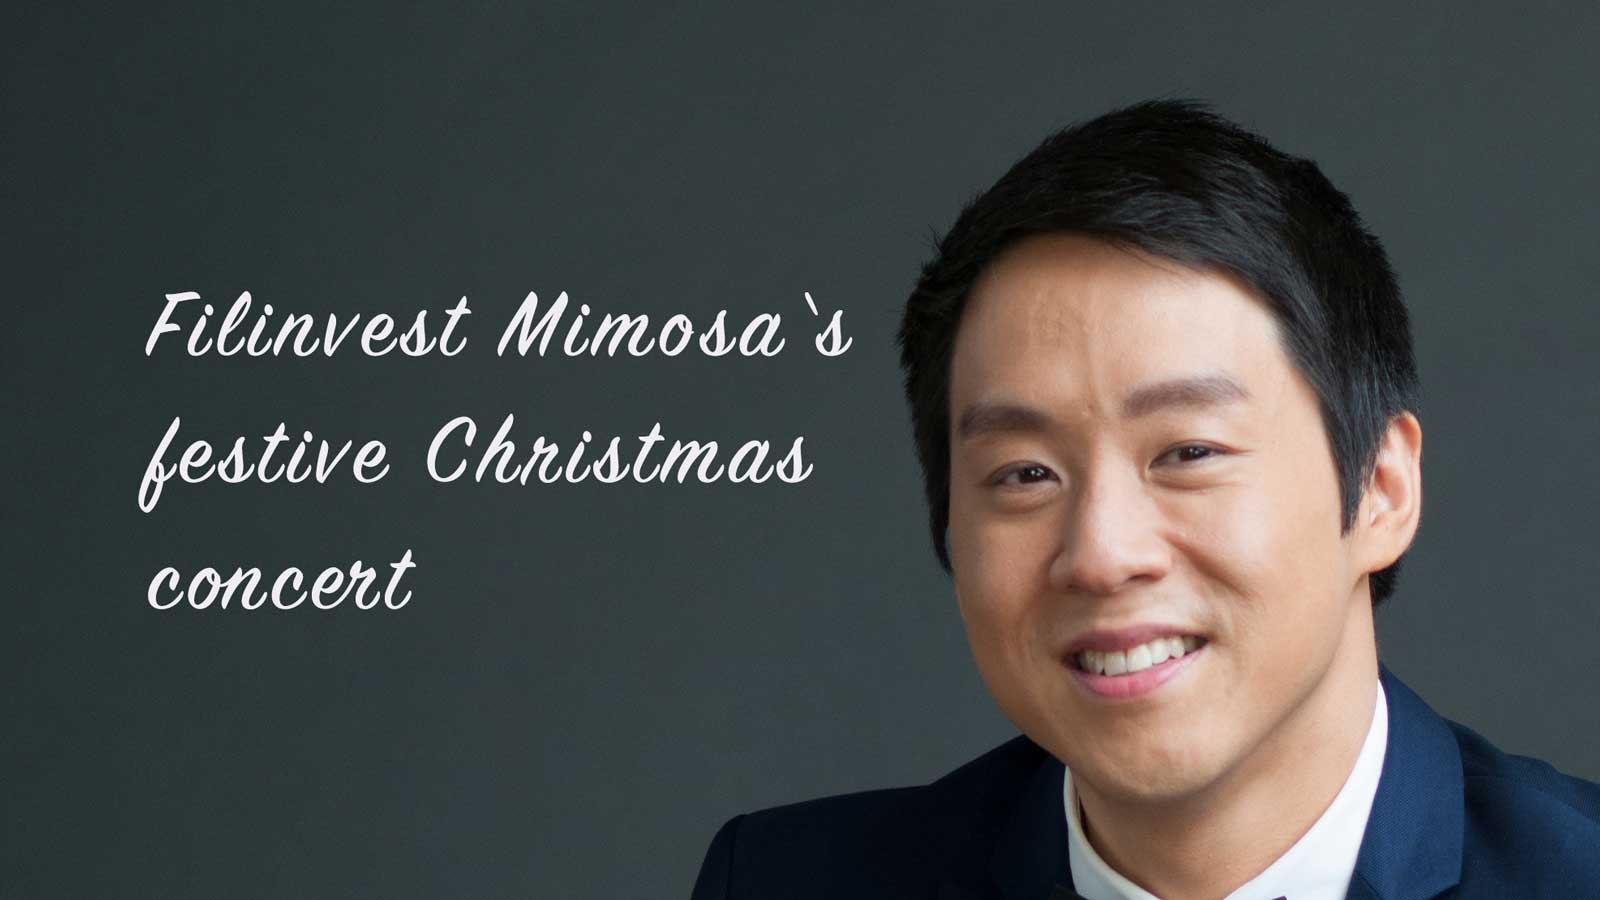 Festive concert at Filinvest Mimosa